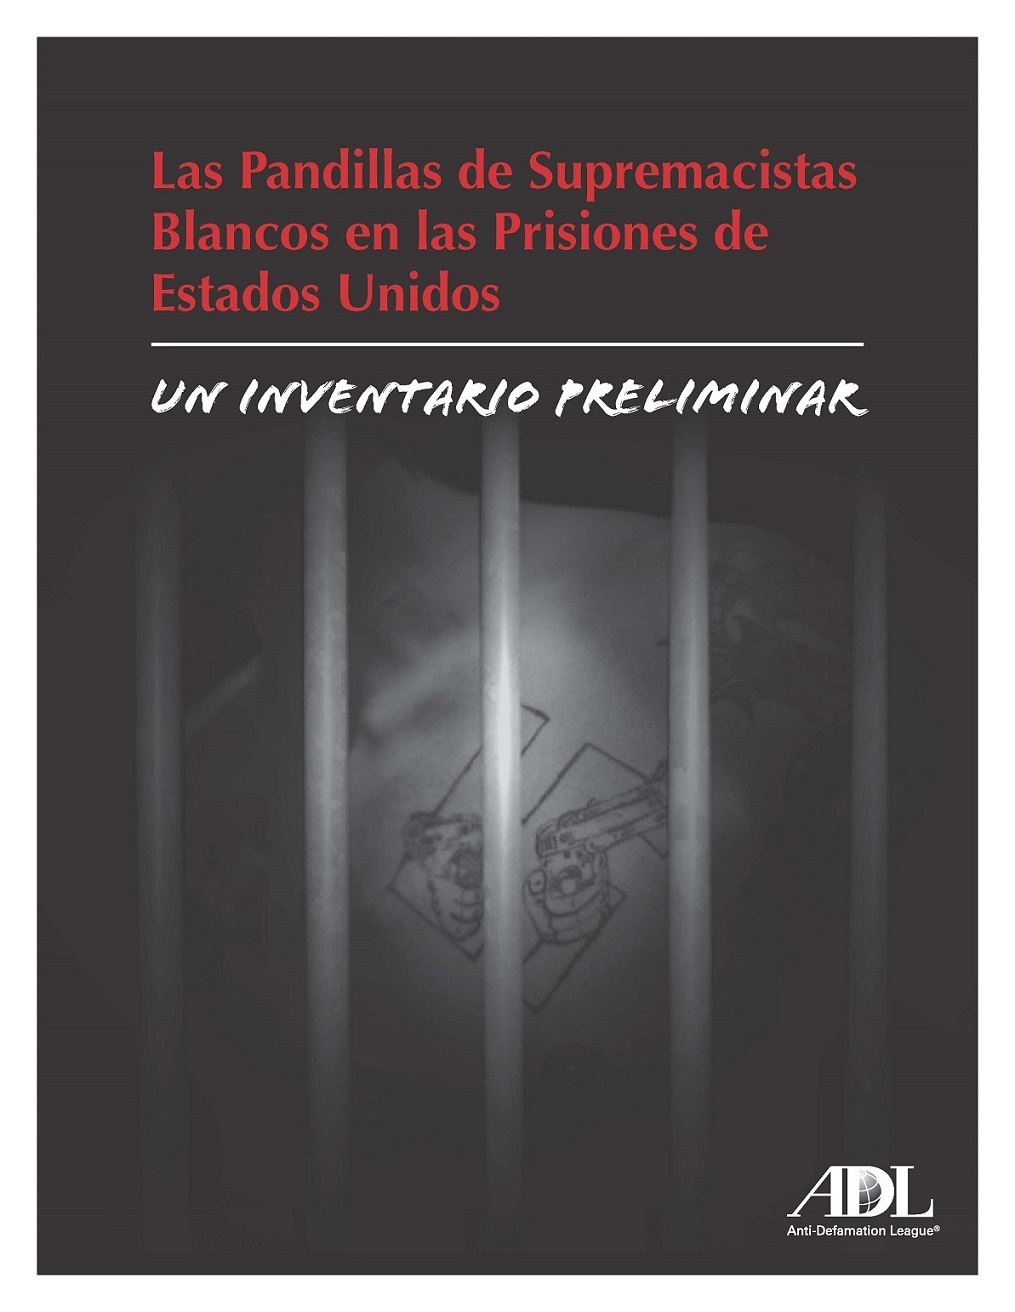 White Supremacist Prison Gang Report - Spanish Version THUMBNAIL